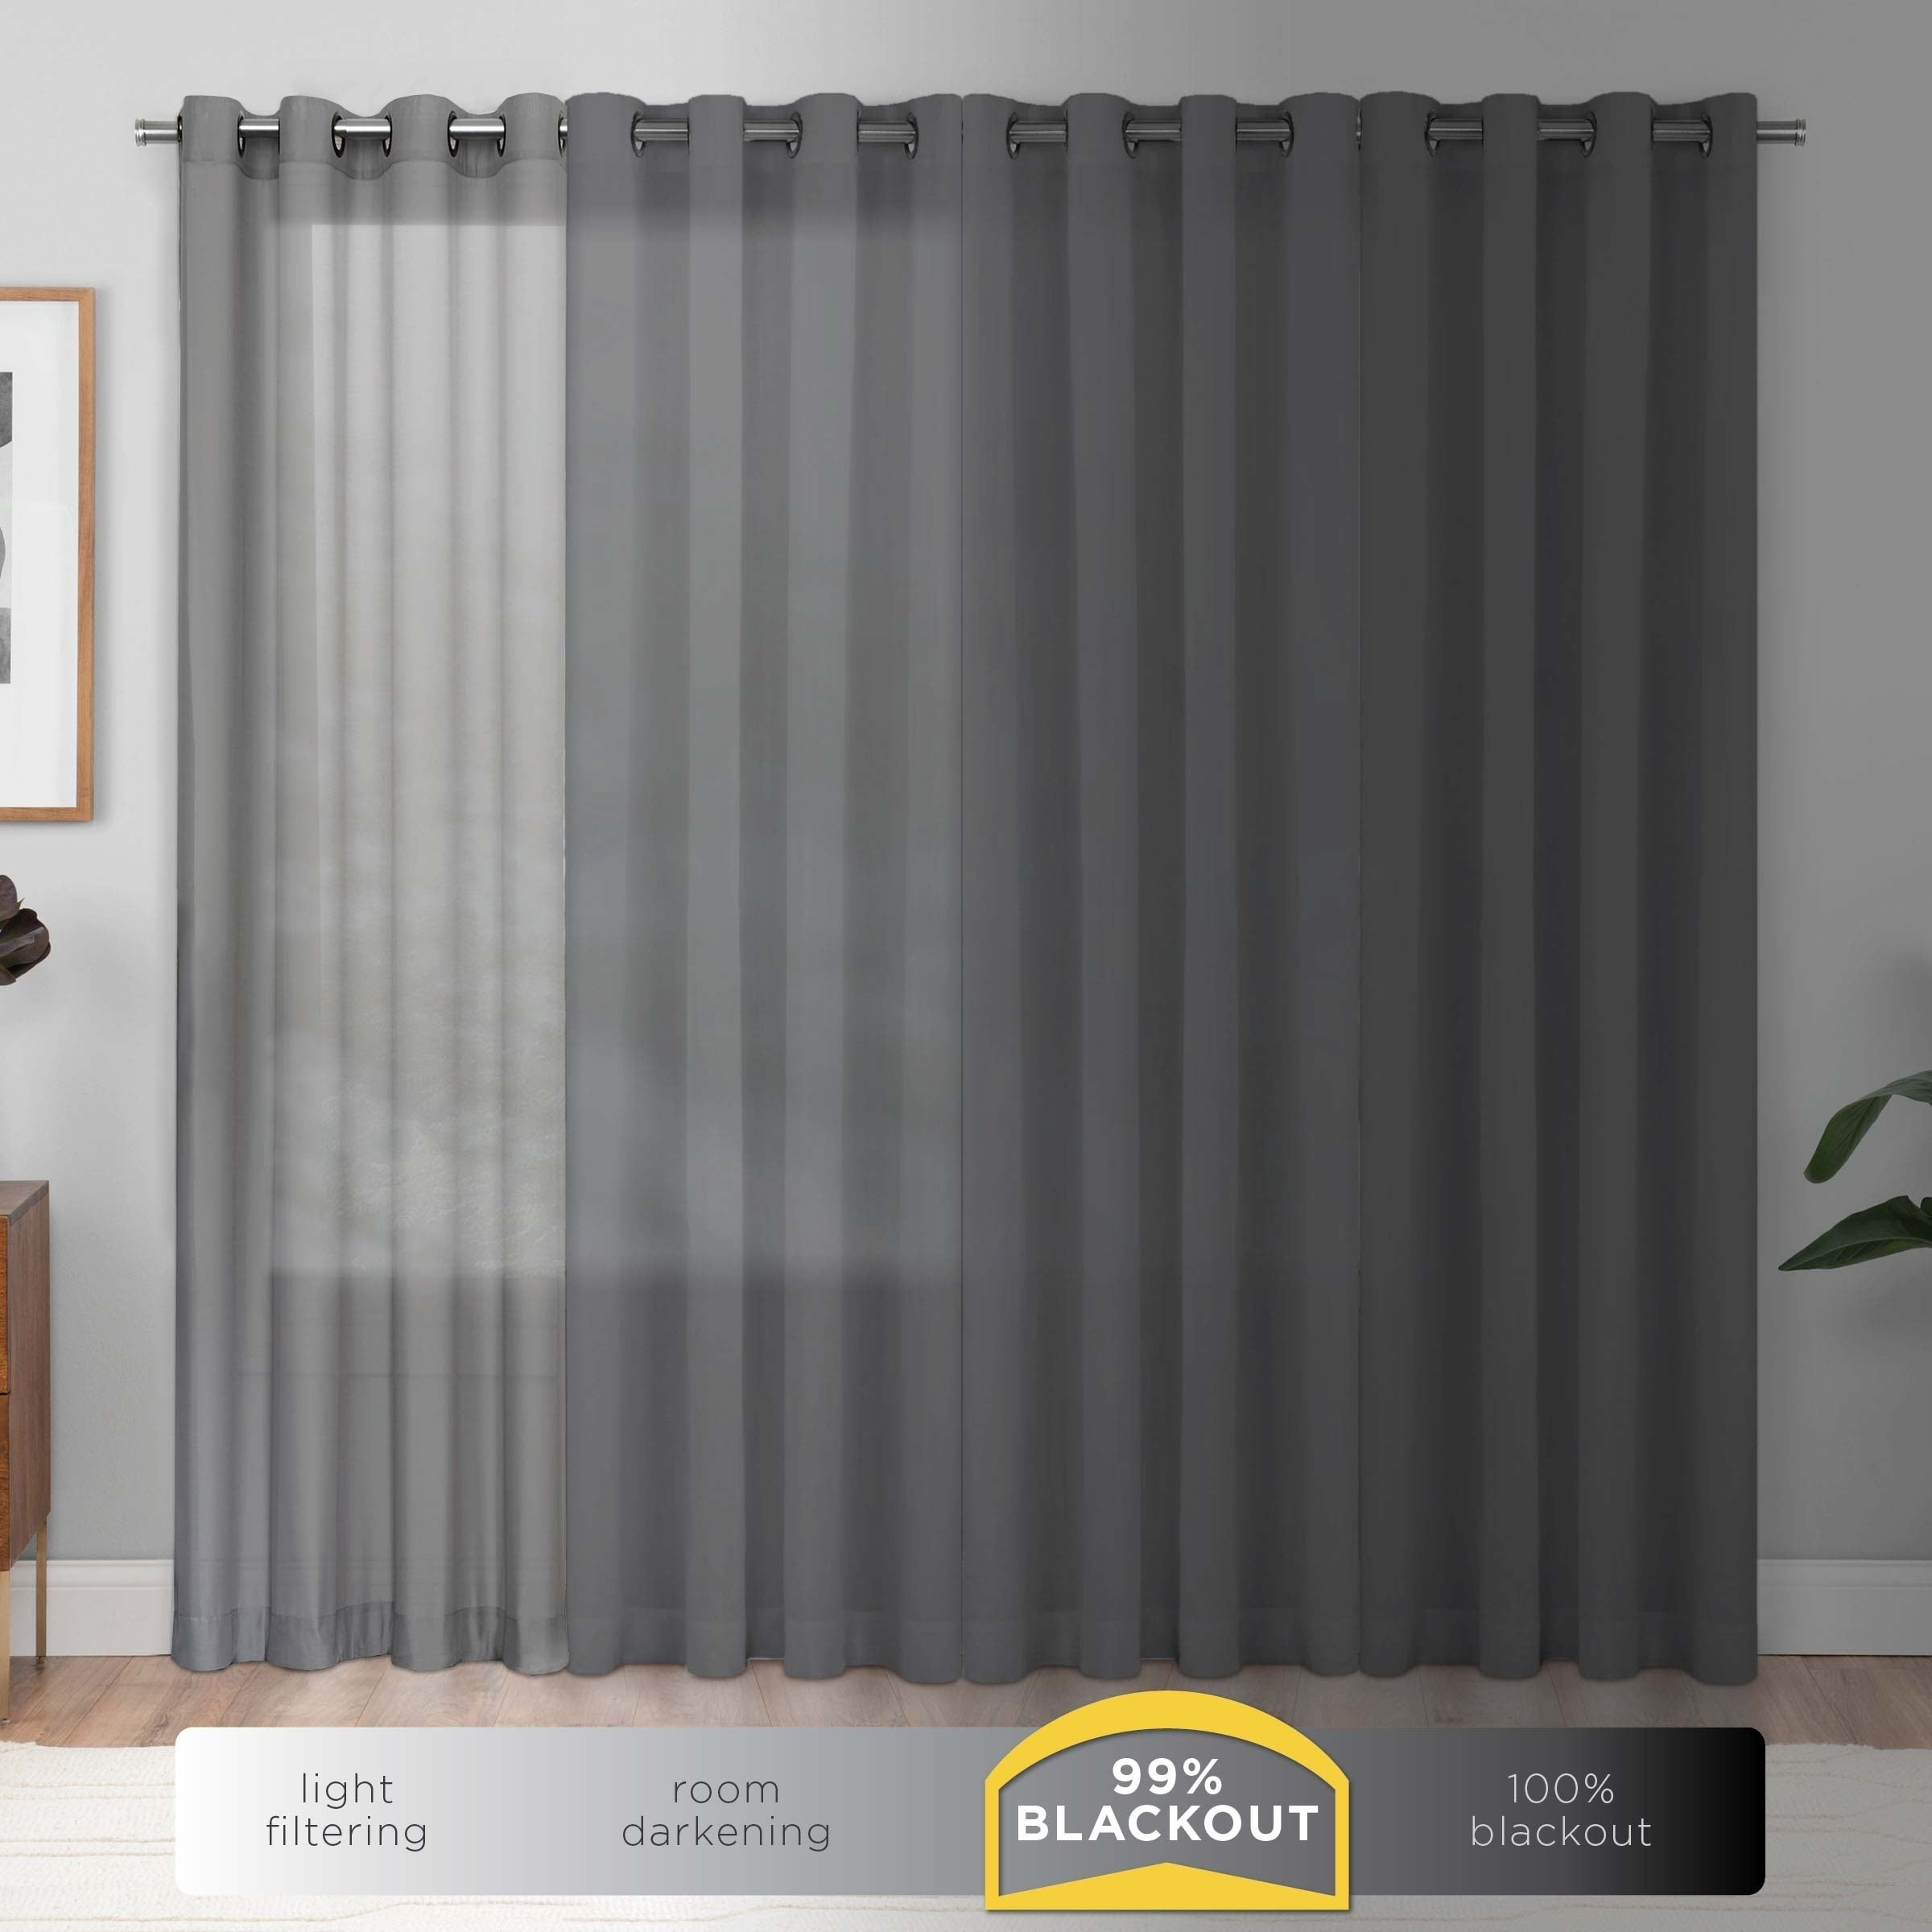 Eclipse Corinne Thermaback Curtain Panel Regarding Eclipse Corinne Thermaback Curtain Panels (View 4 of 20)